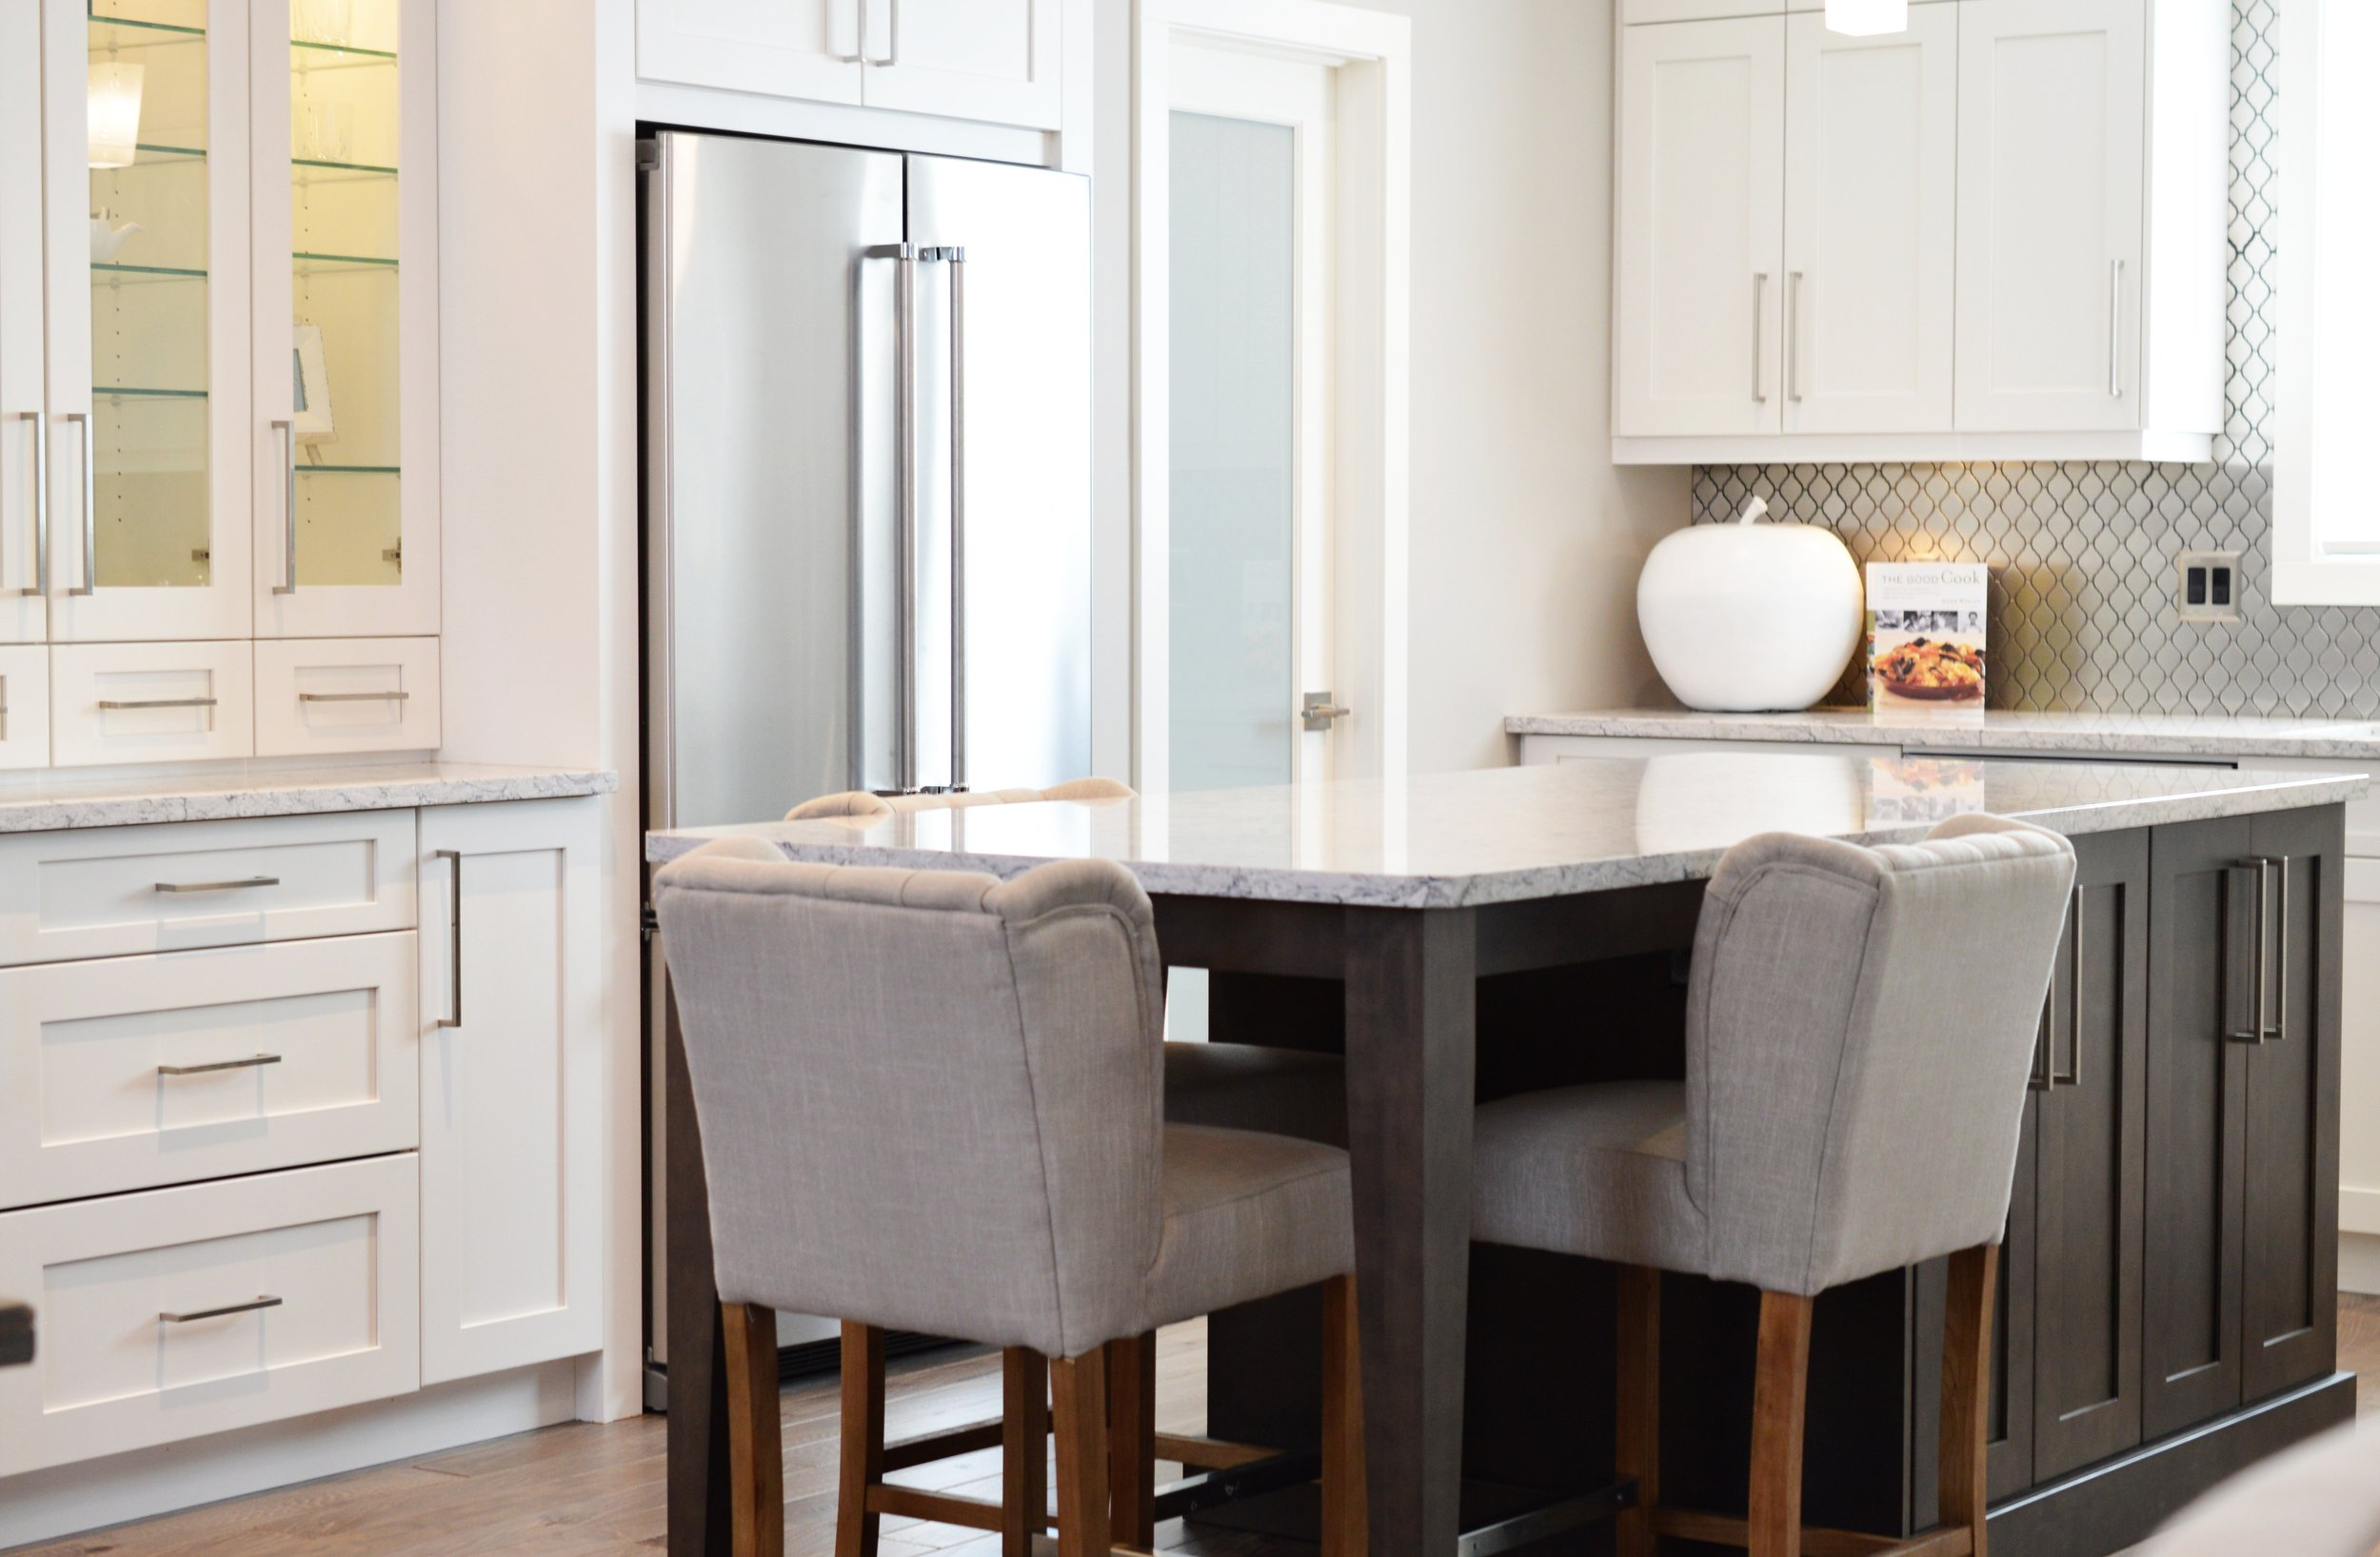 apartment-architecture-cabinets-373548.jpg